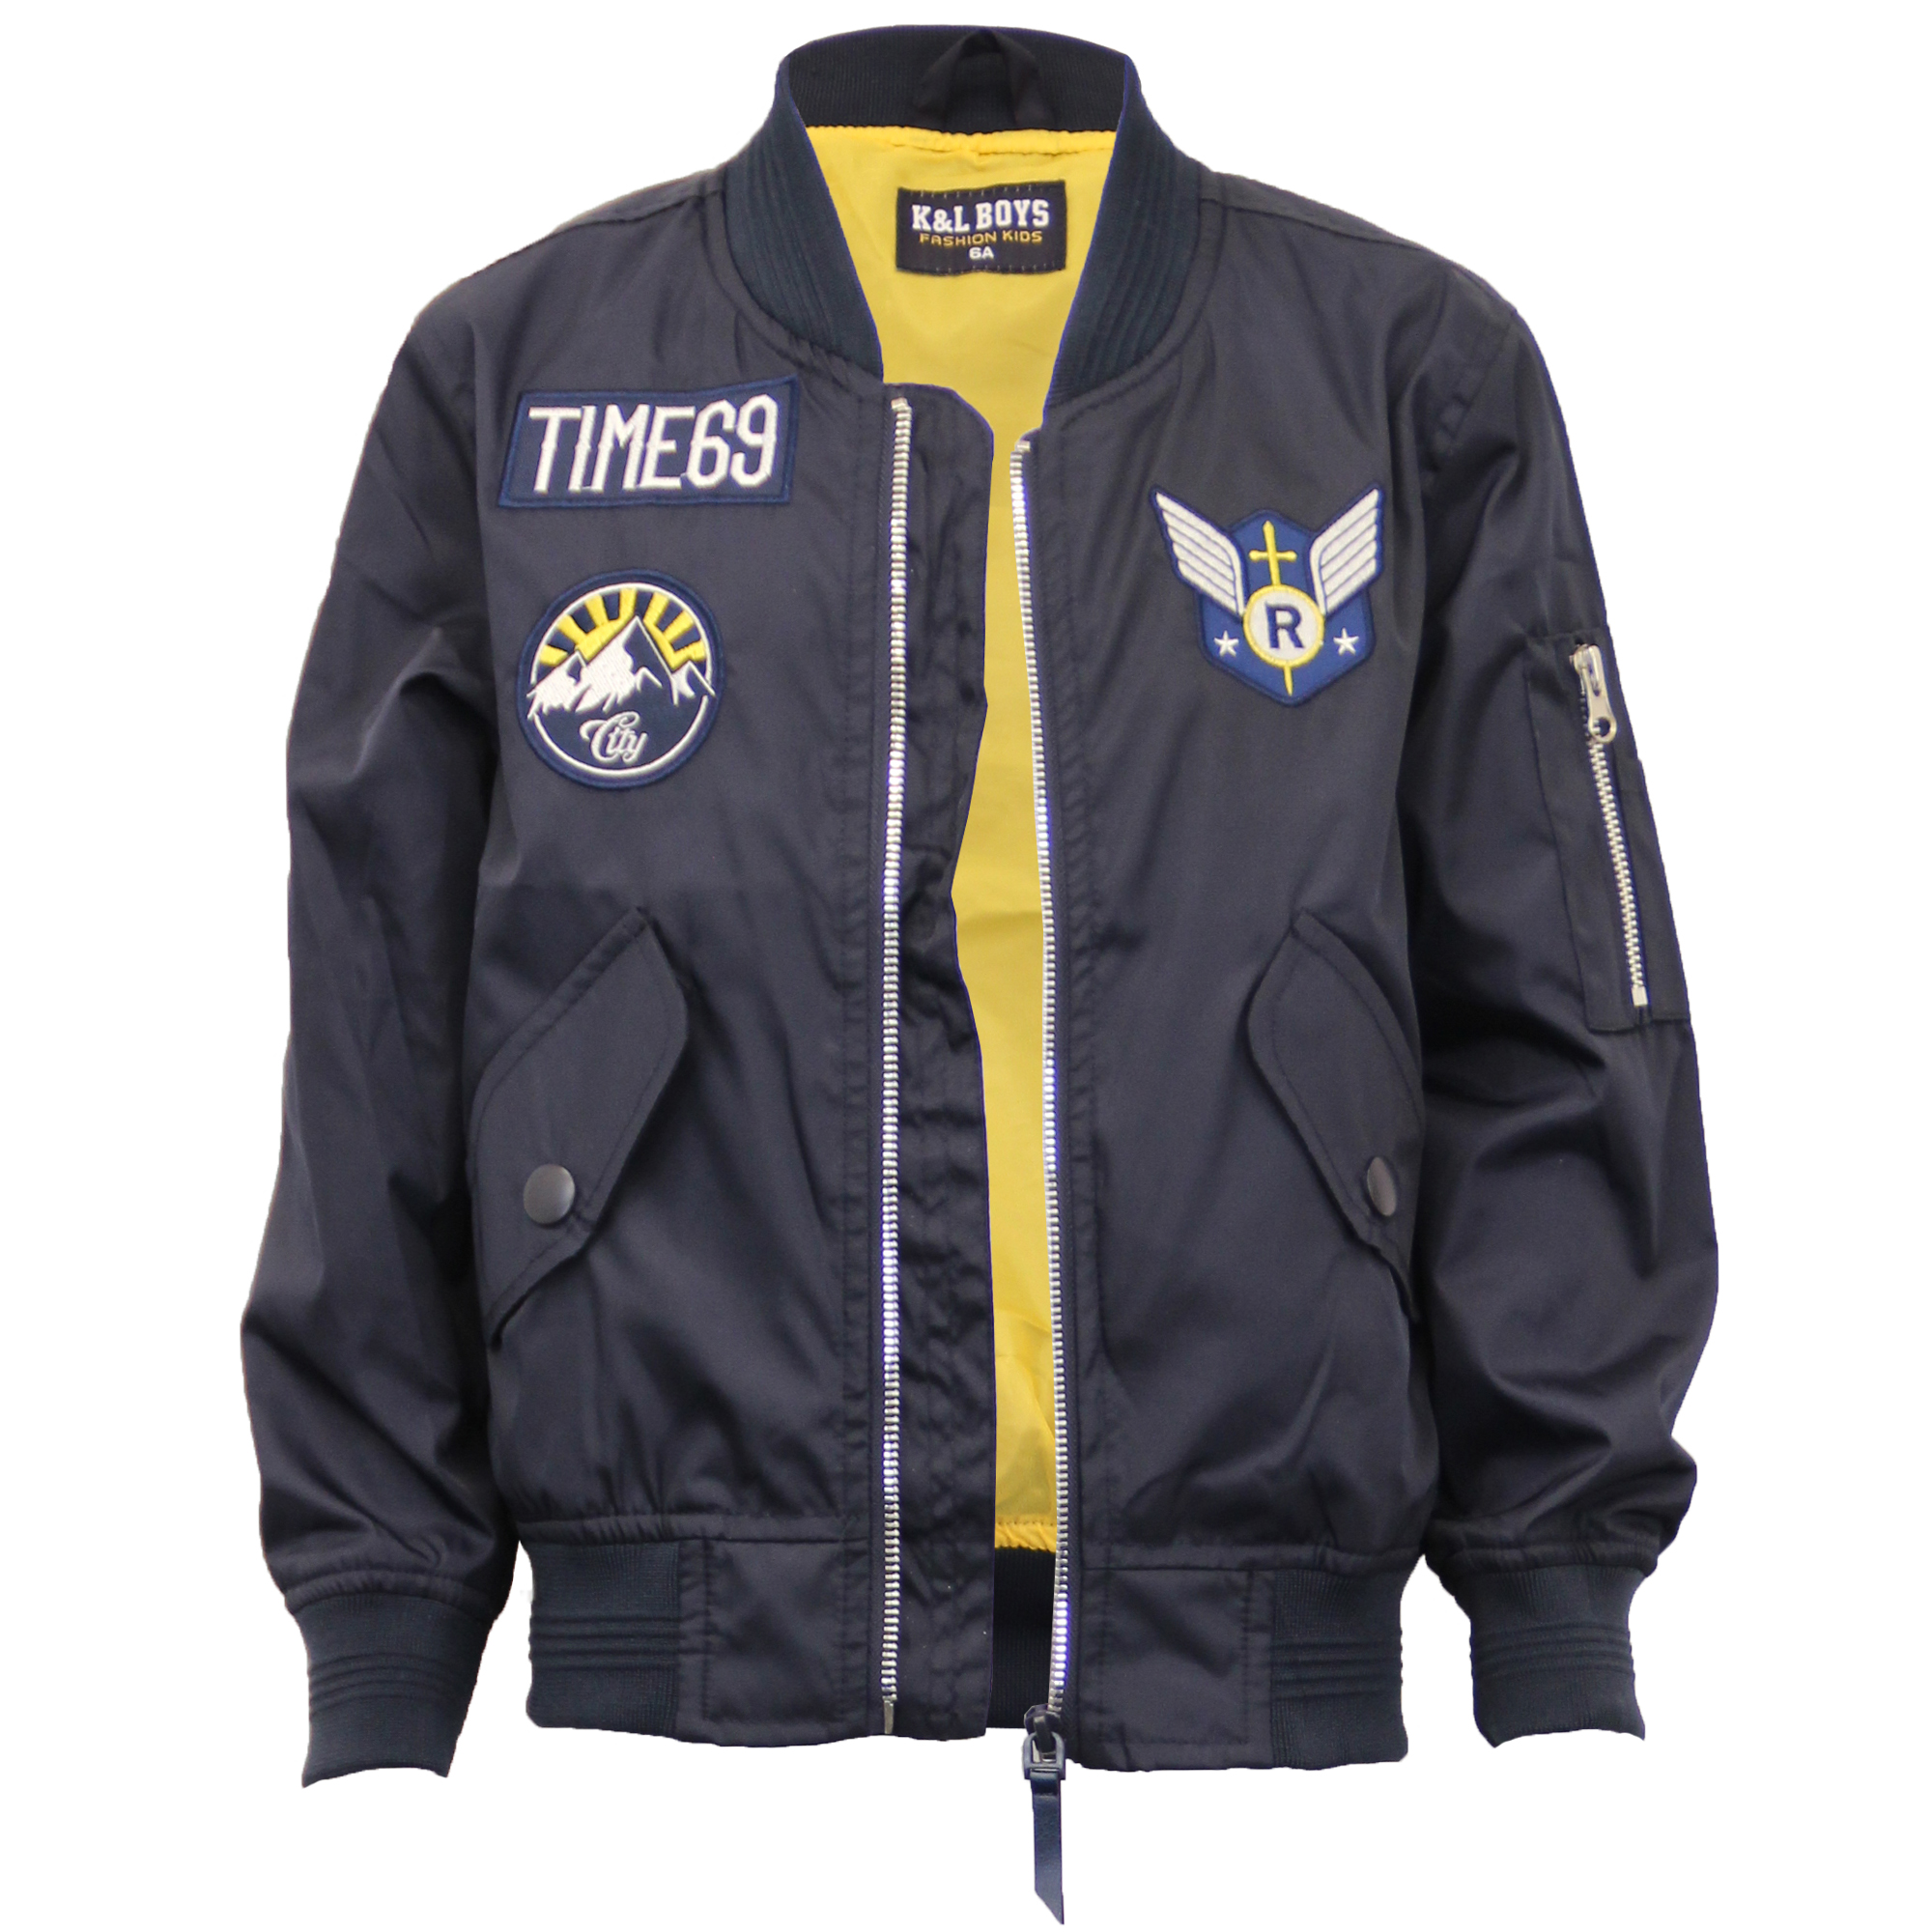 urban style vests and jackets for boys Embrace the new collection of boys' jackets. Pick out the perfect piece depending on his style and the occasion, from casual leather or denim jackets and bombers to practical parkas and puffer vests.